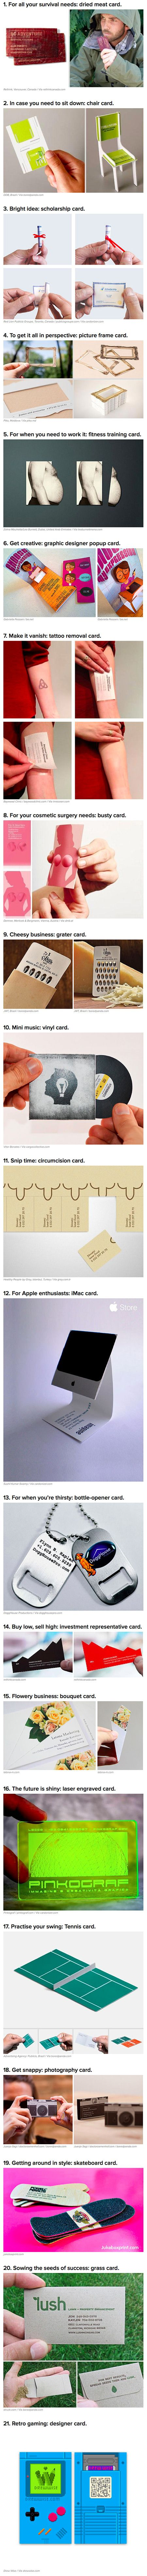 Best 25 Awesome business cards ideas on Pinterest